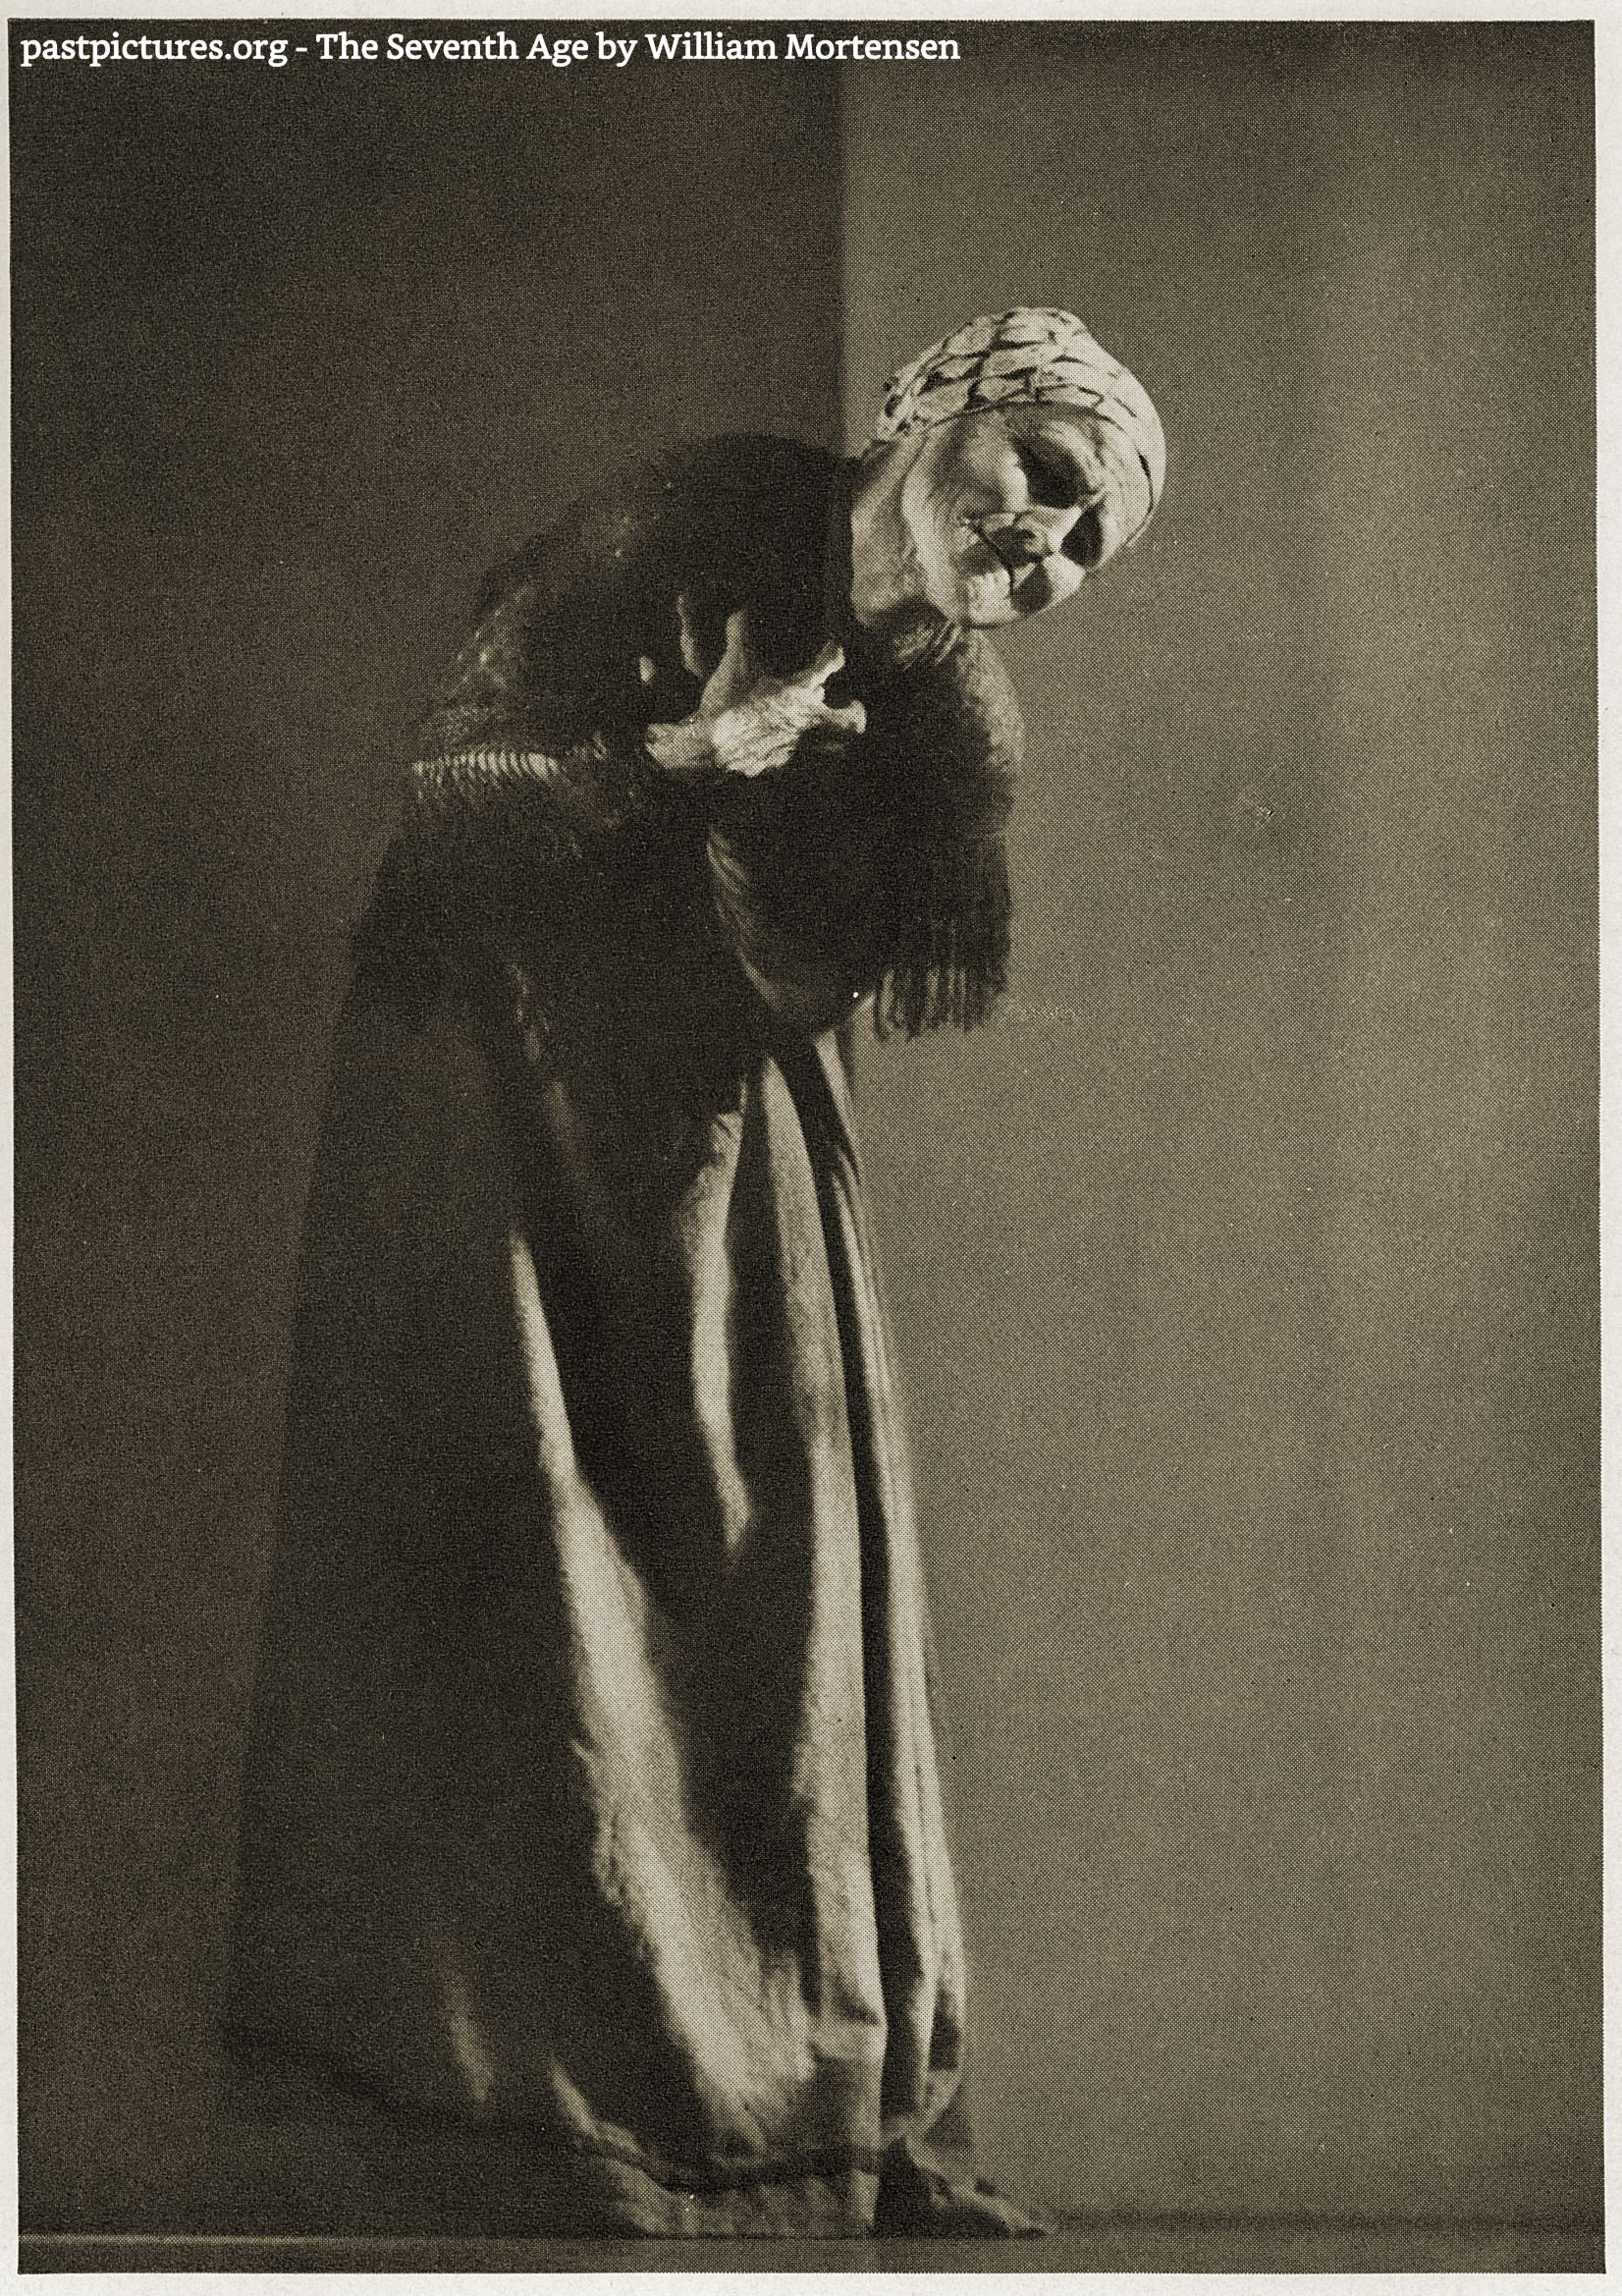 The Seventh Age by William Mortensen about 1927